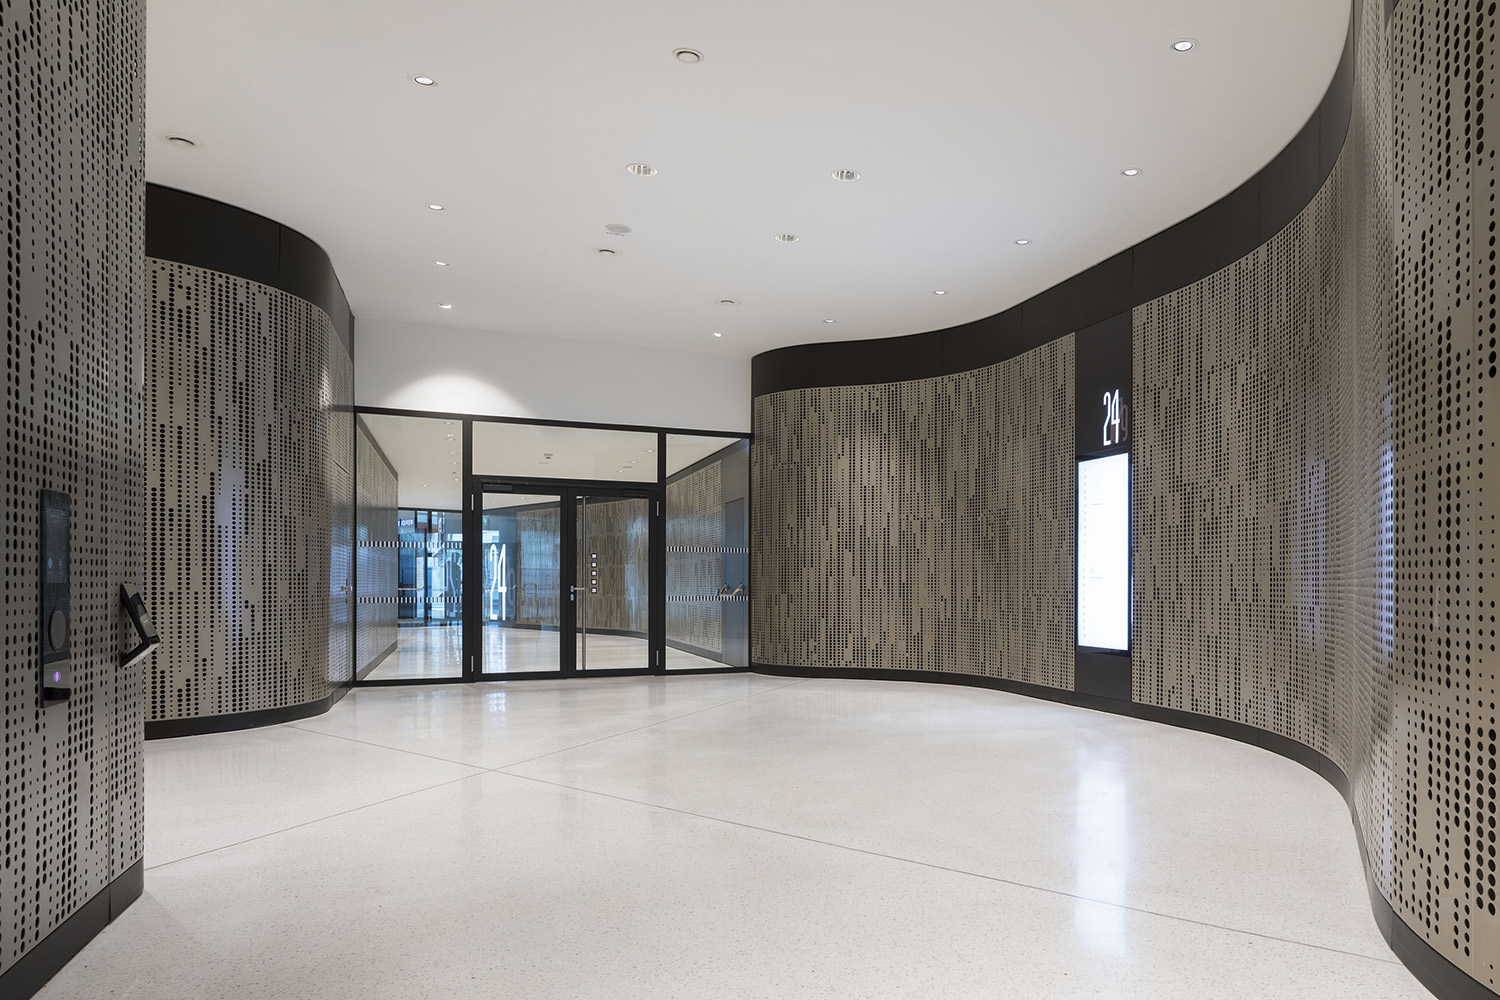 THE ICON Vienna / 11 / entr4ance to the office spaces Rupert Steiner